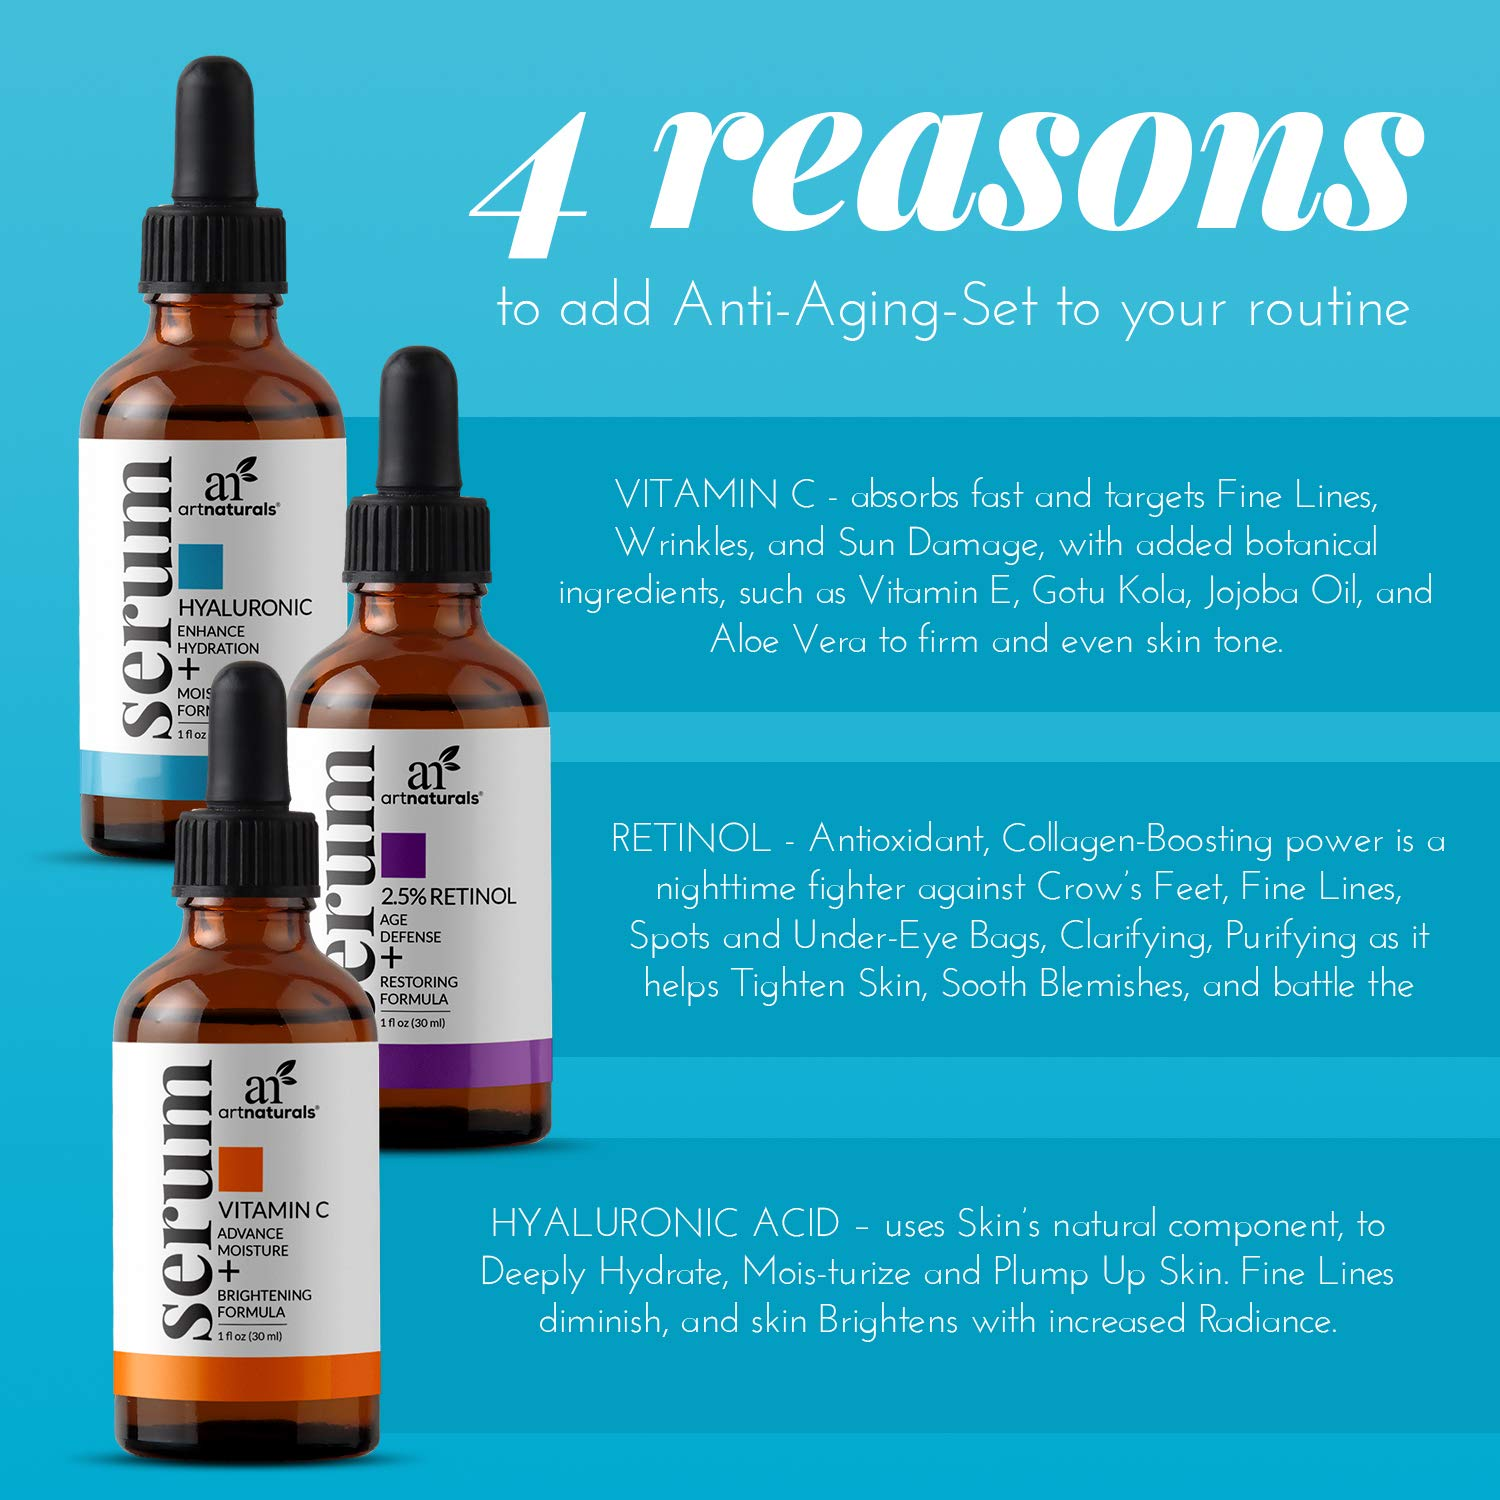 ArtNaturals Anti-Aging-Set with Vitamin-C Retinol and Hyaluronic-Acid - (3 x 1 Fl Oz / 30ml) Serum for Anti Wrinkle and Dark Circle Remover – All Natural and Moisturizing: Beauty